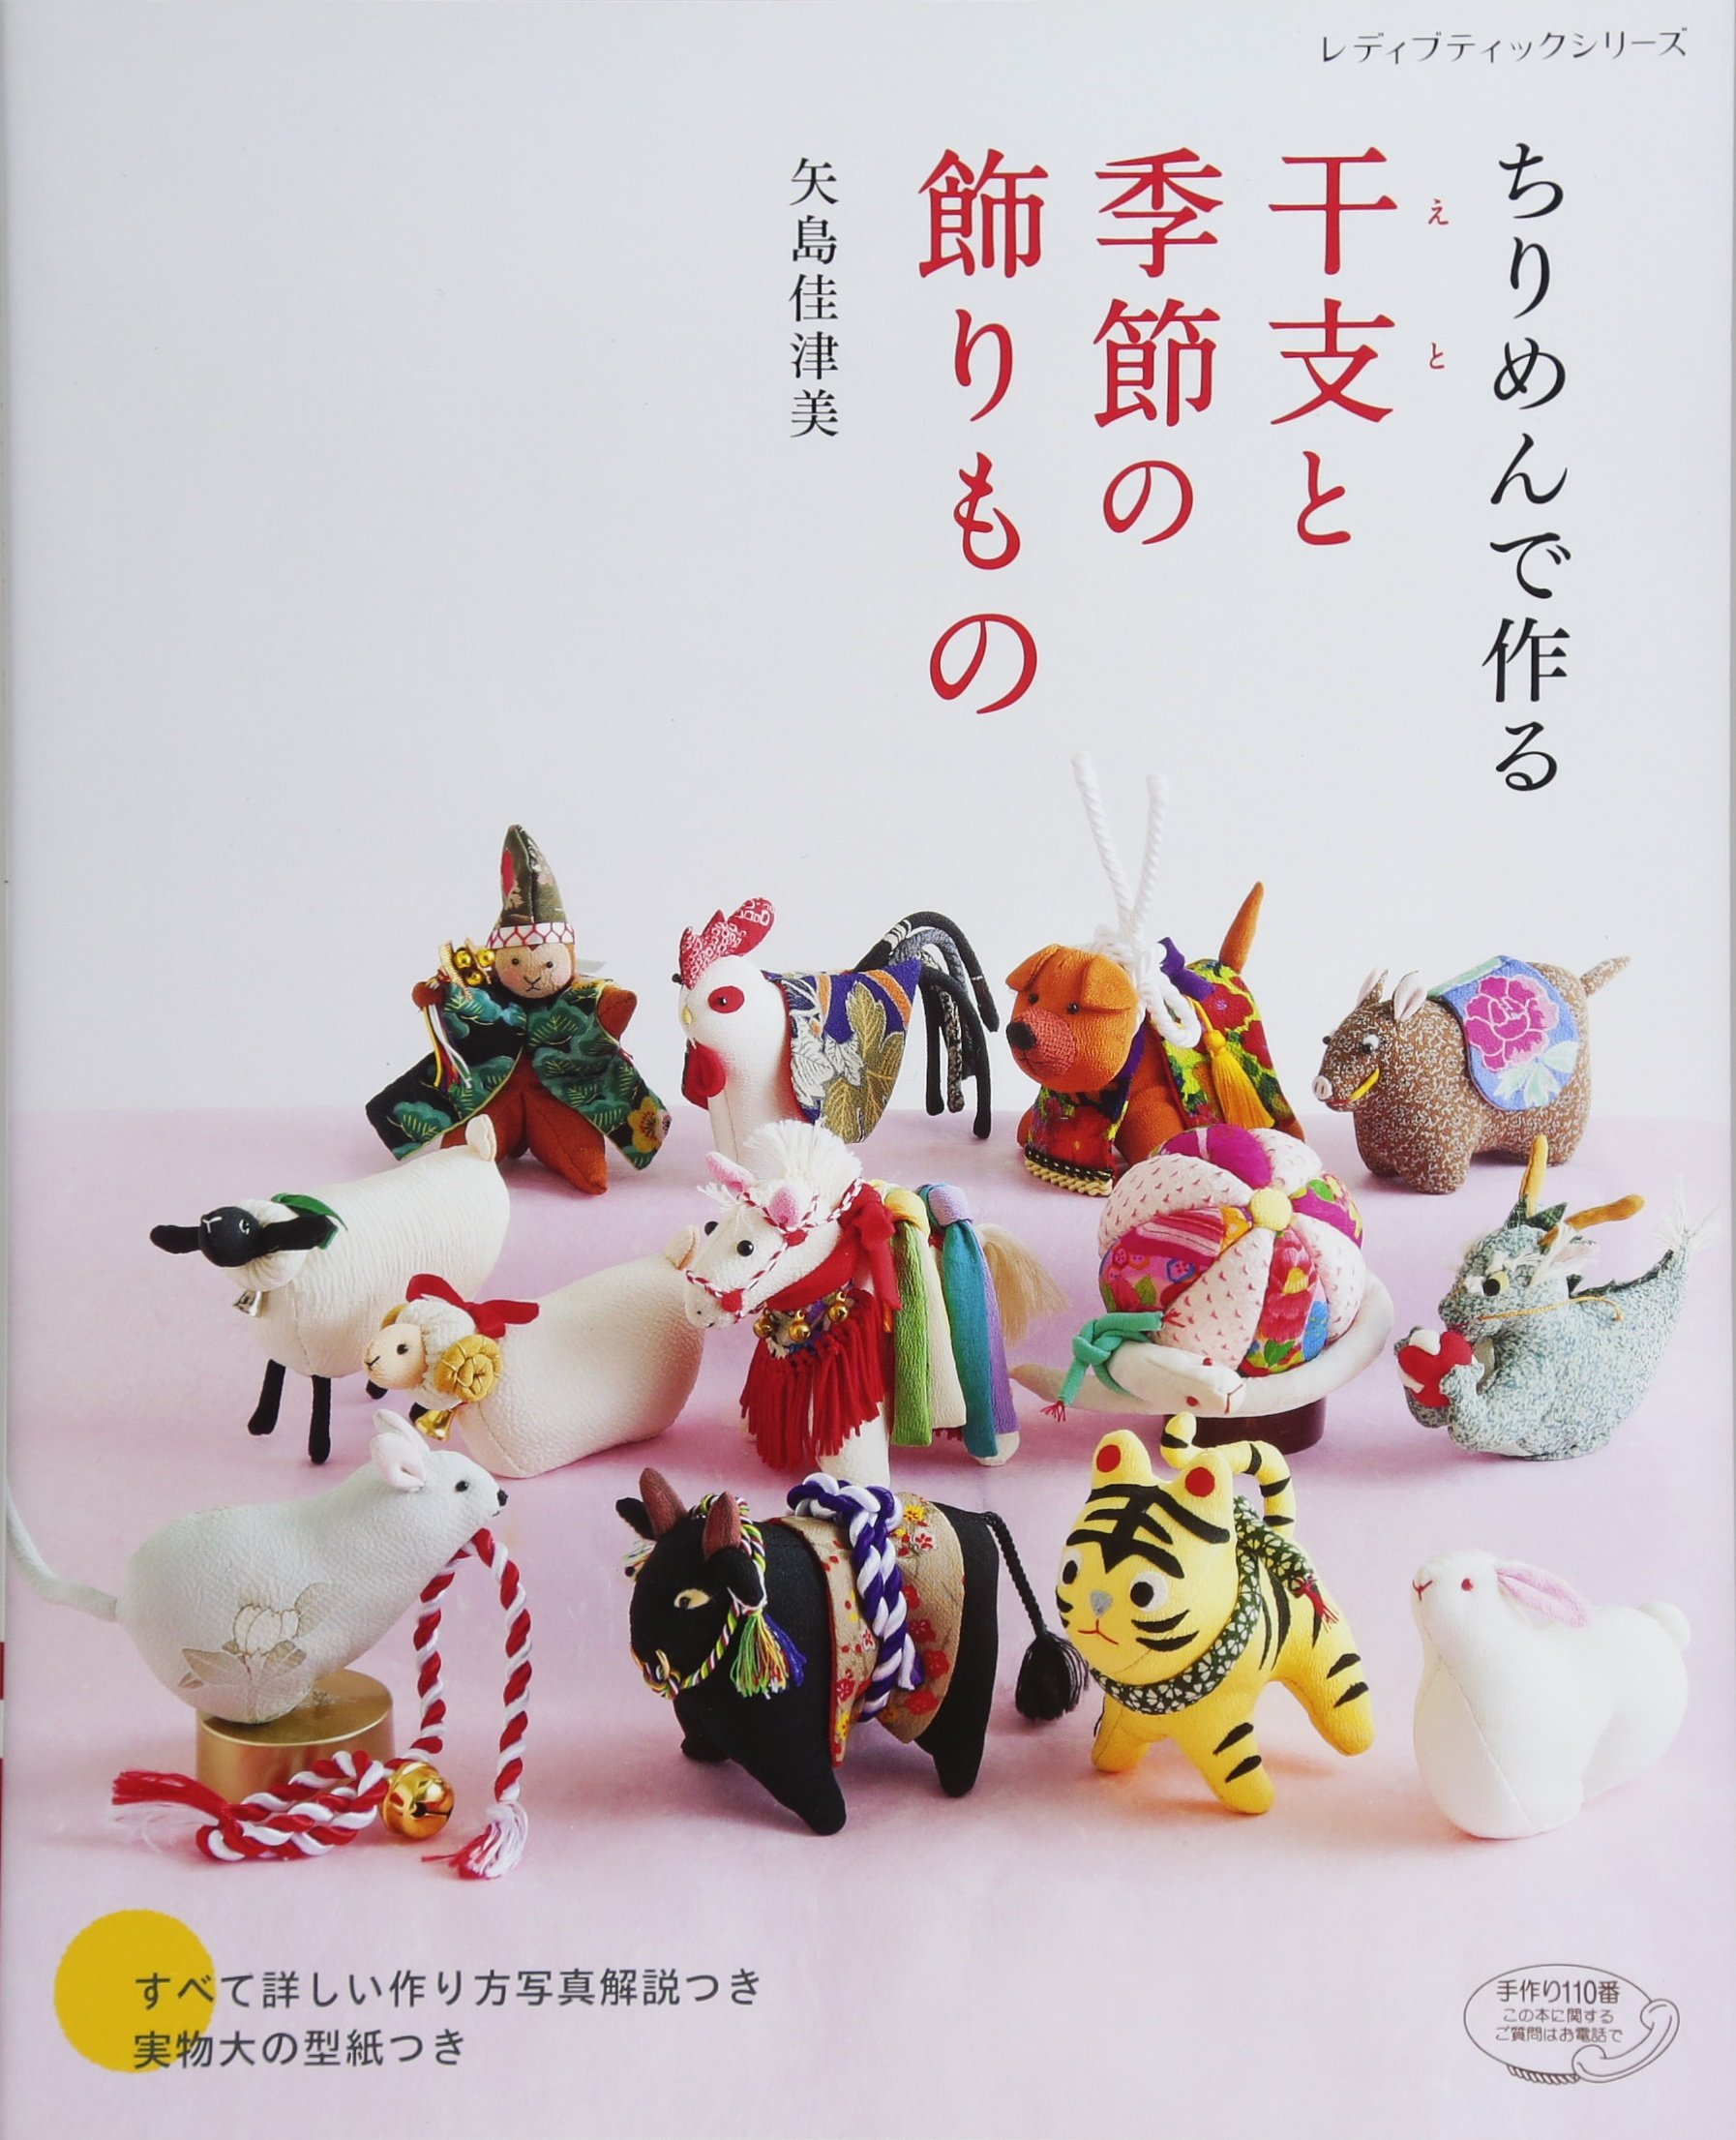 Chinese zodiac signs and seasonal decorations made with chirimen